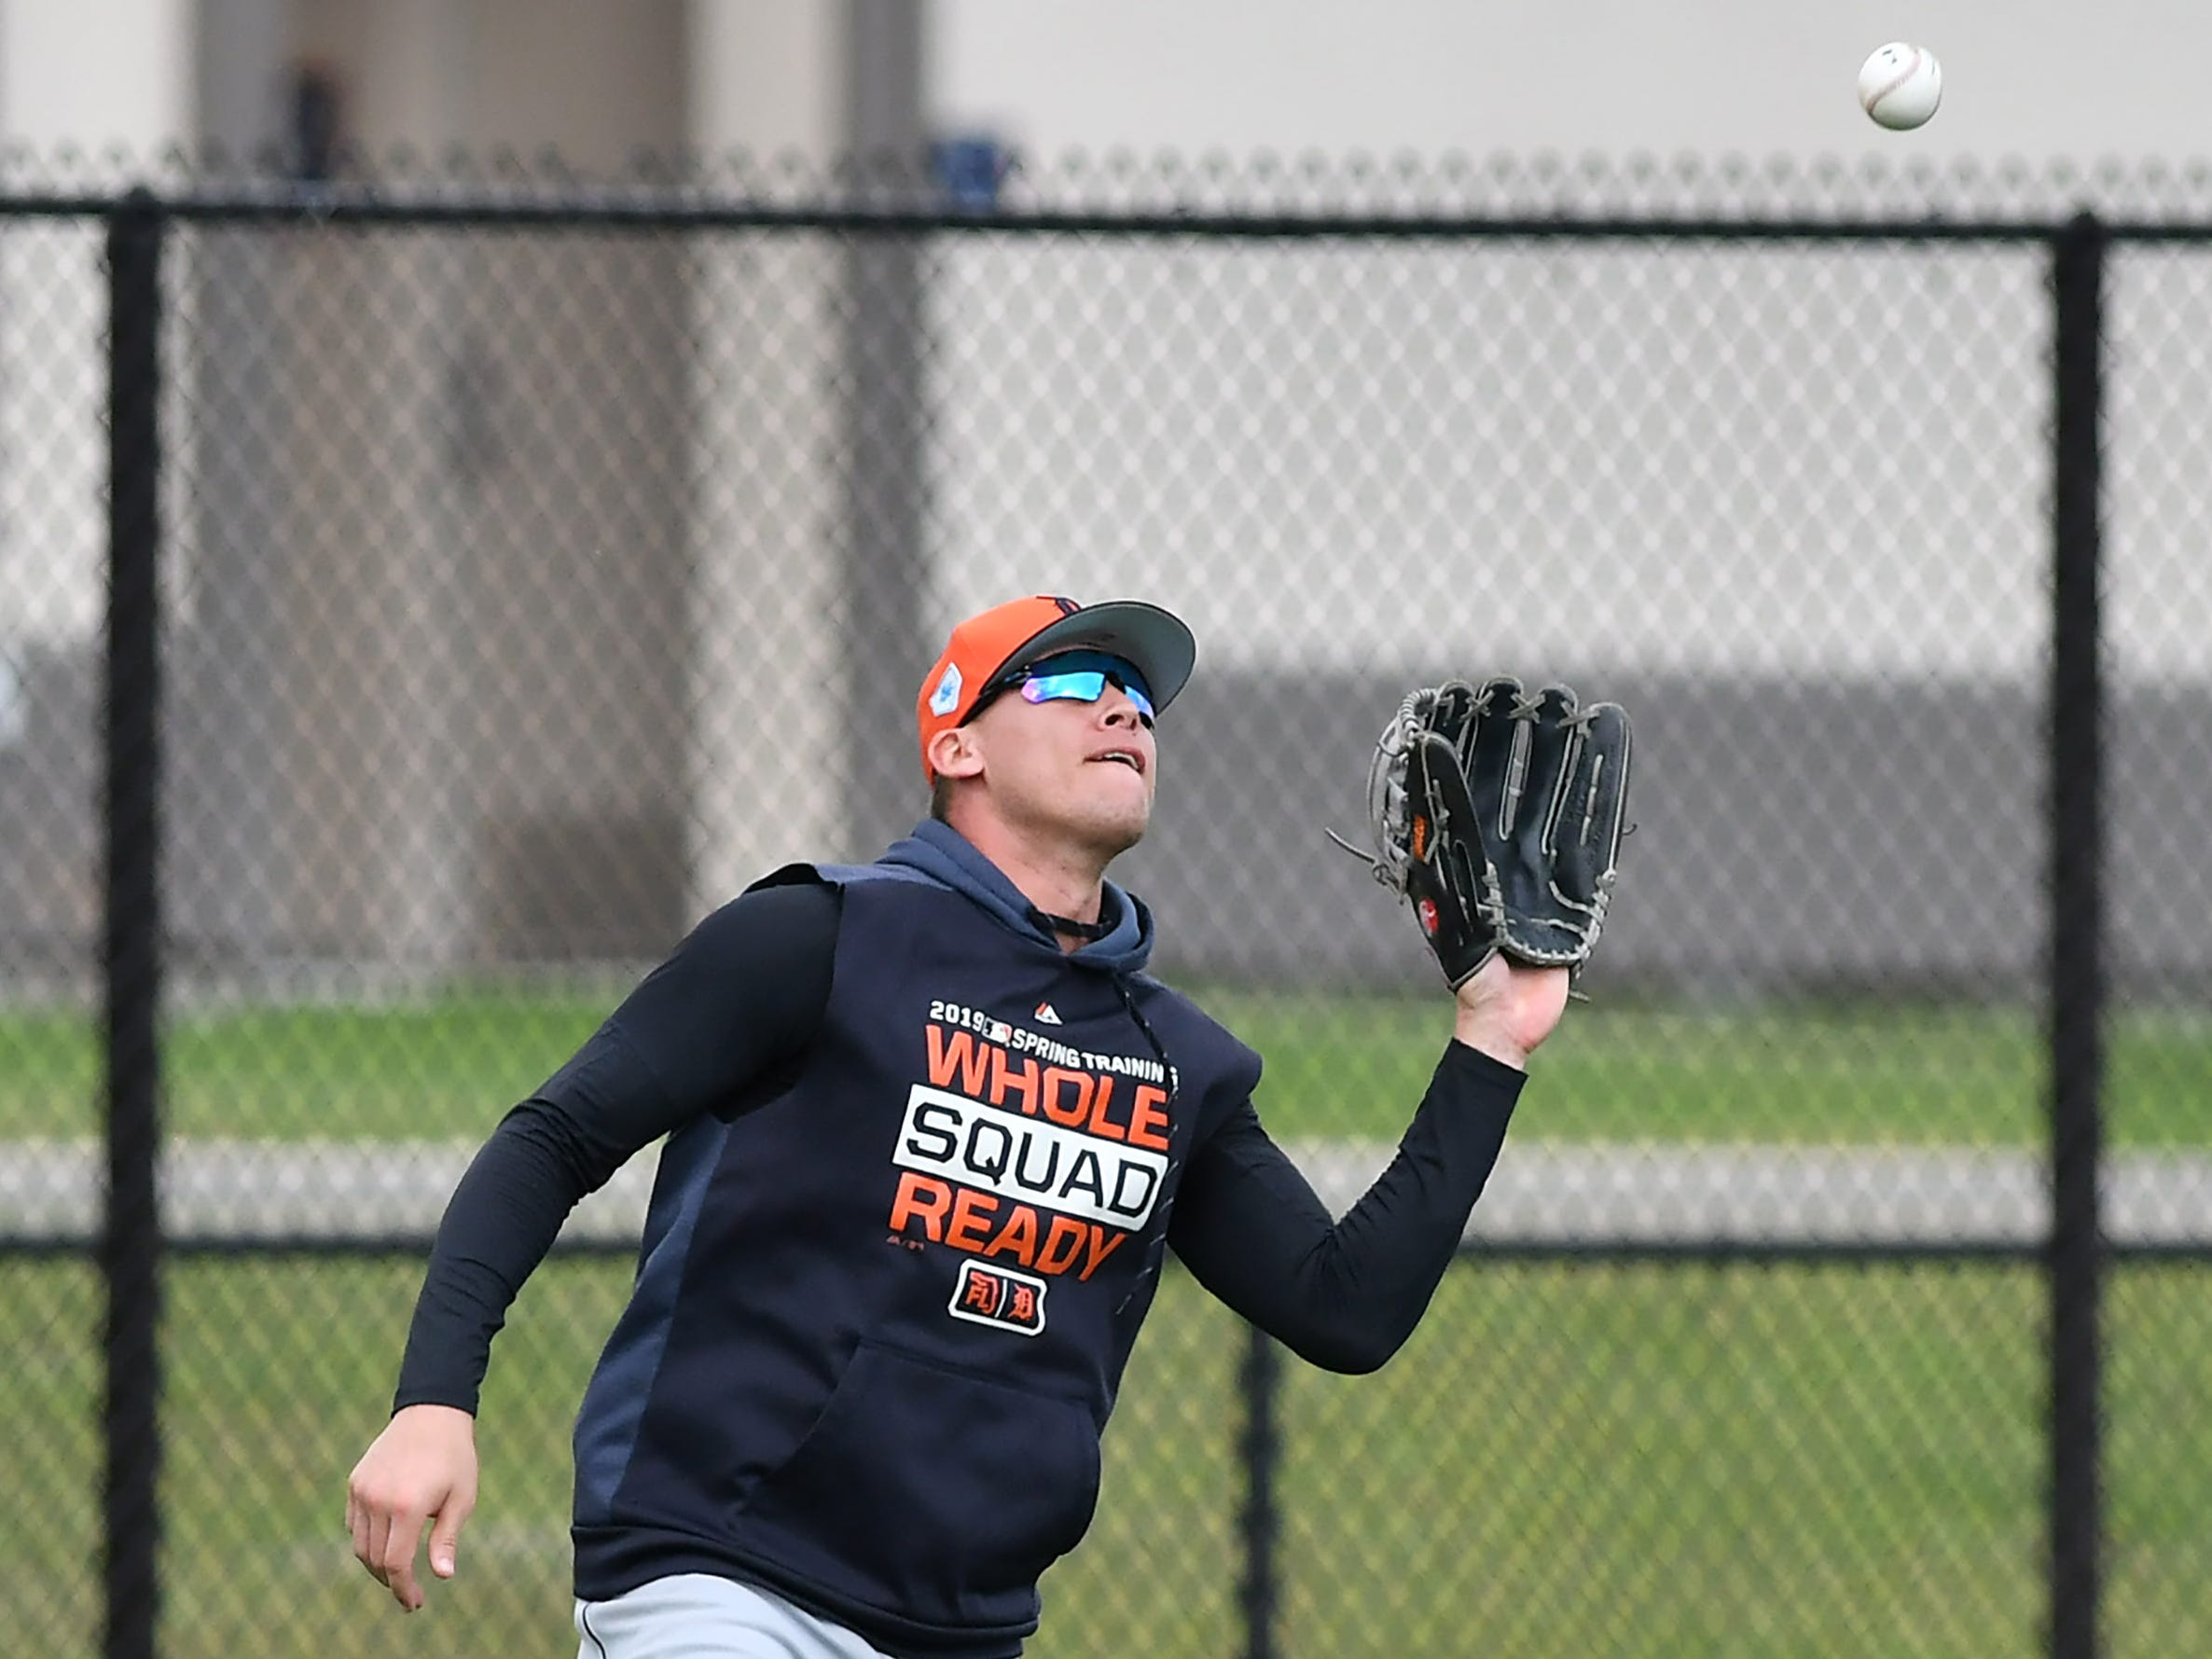 Tigers outfielder JaCoby Jones makes a catch during outfield drills.